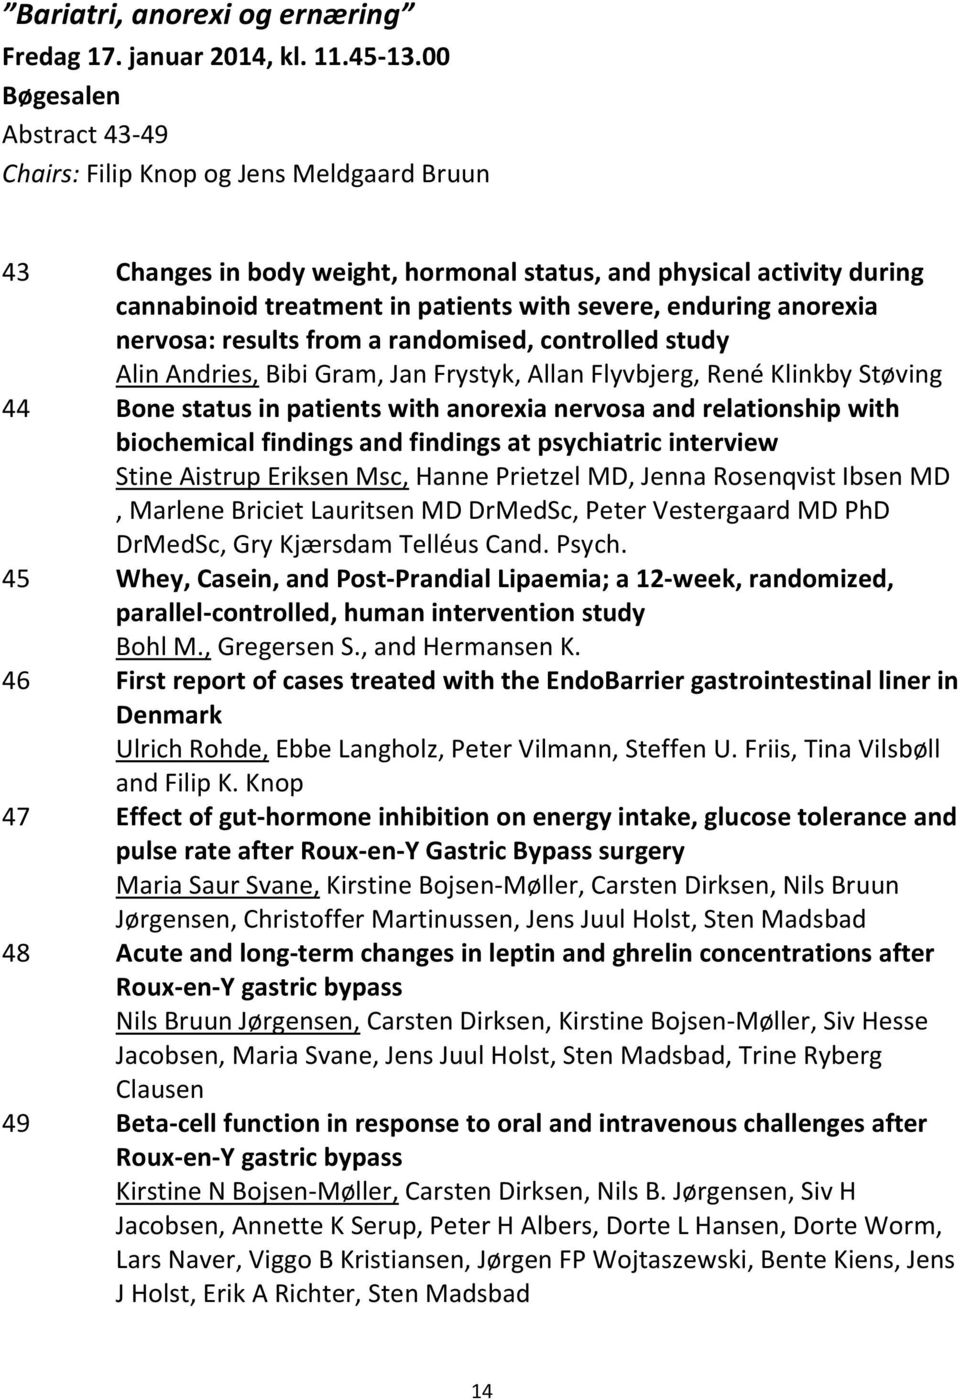 anorexia nervosa: results from a randomised, controlled study Alin Andries, Bibi Gram, Jan Frystyk, Allan Flyvbjerg, René Klinkby Støving 44 Bone status in patients with anorexia nervosa and